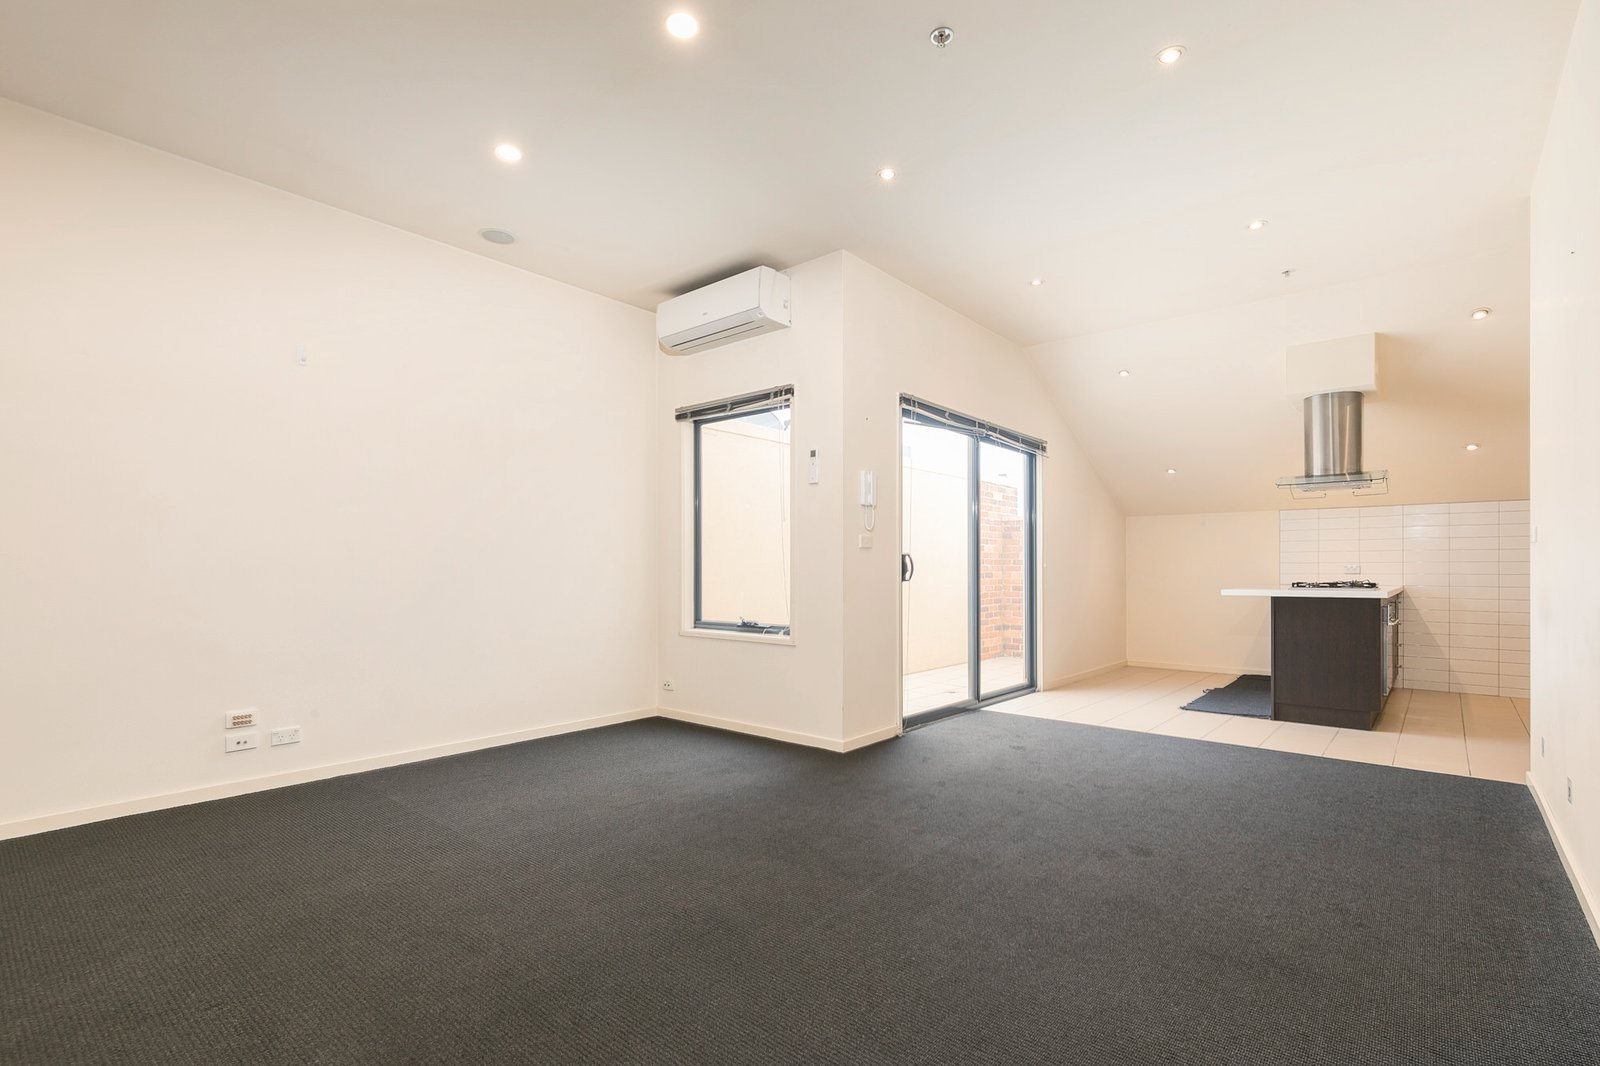 9/1 James Street, Fitzroy, VIC, 3065 image 2